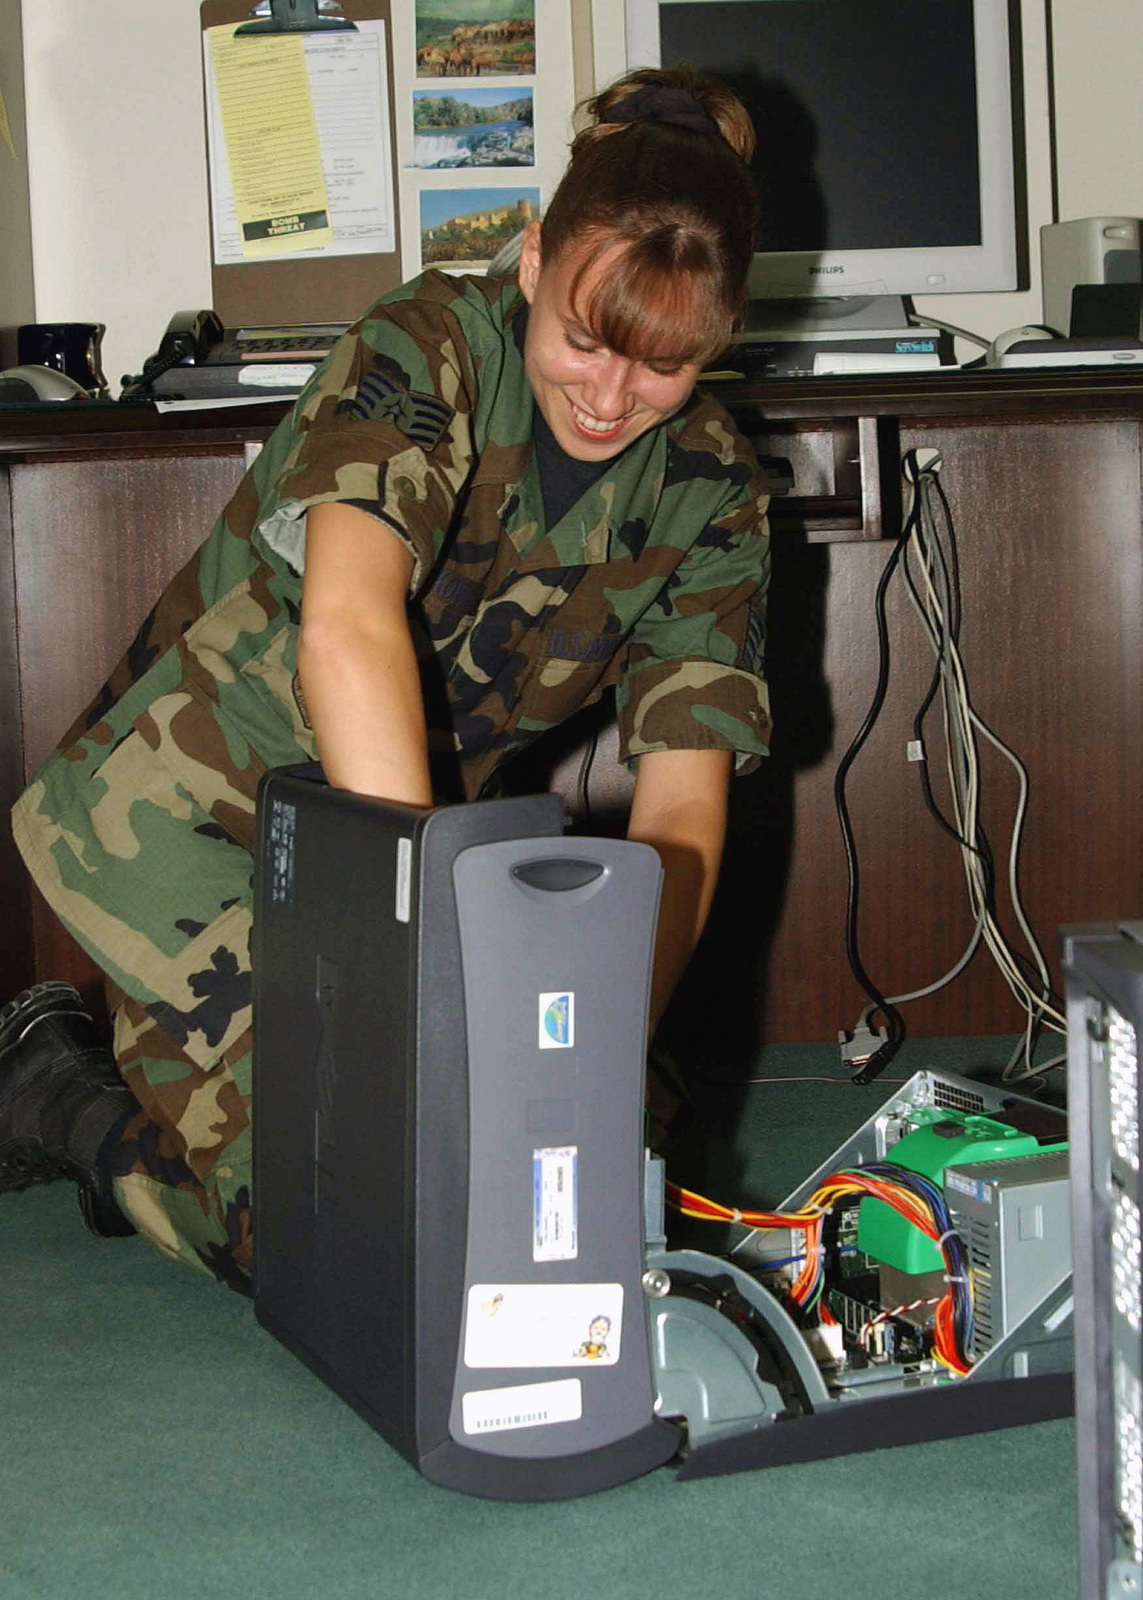 US Air Force (USAF) STAFF Sergeant (SSGT) Cathe Rynkowski, Information Manager, Combined Task Force (CTF) Headquarters, Incirlik Air Base (AB), Turkey, configures a new computer while deployed in support of Operation NORTHERN WATCH